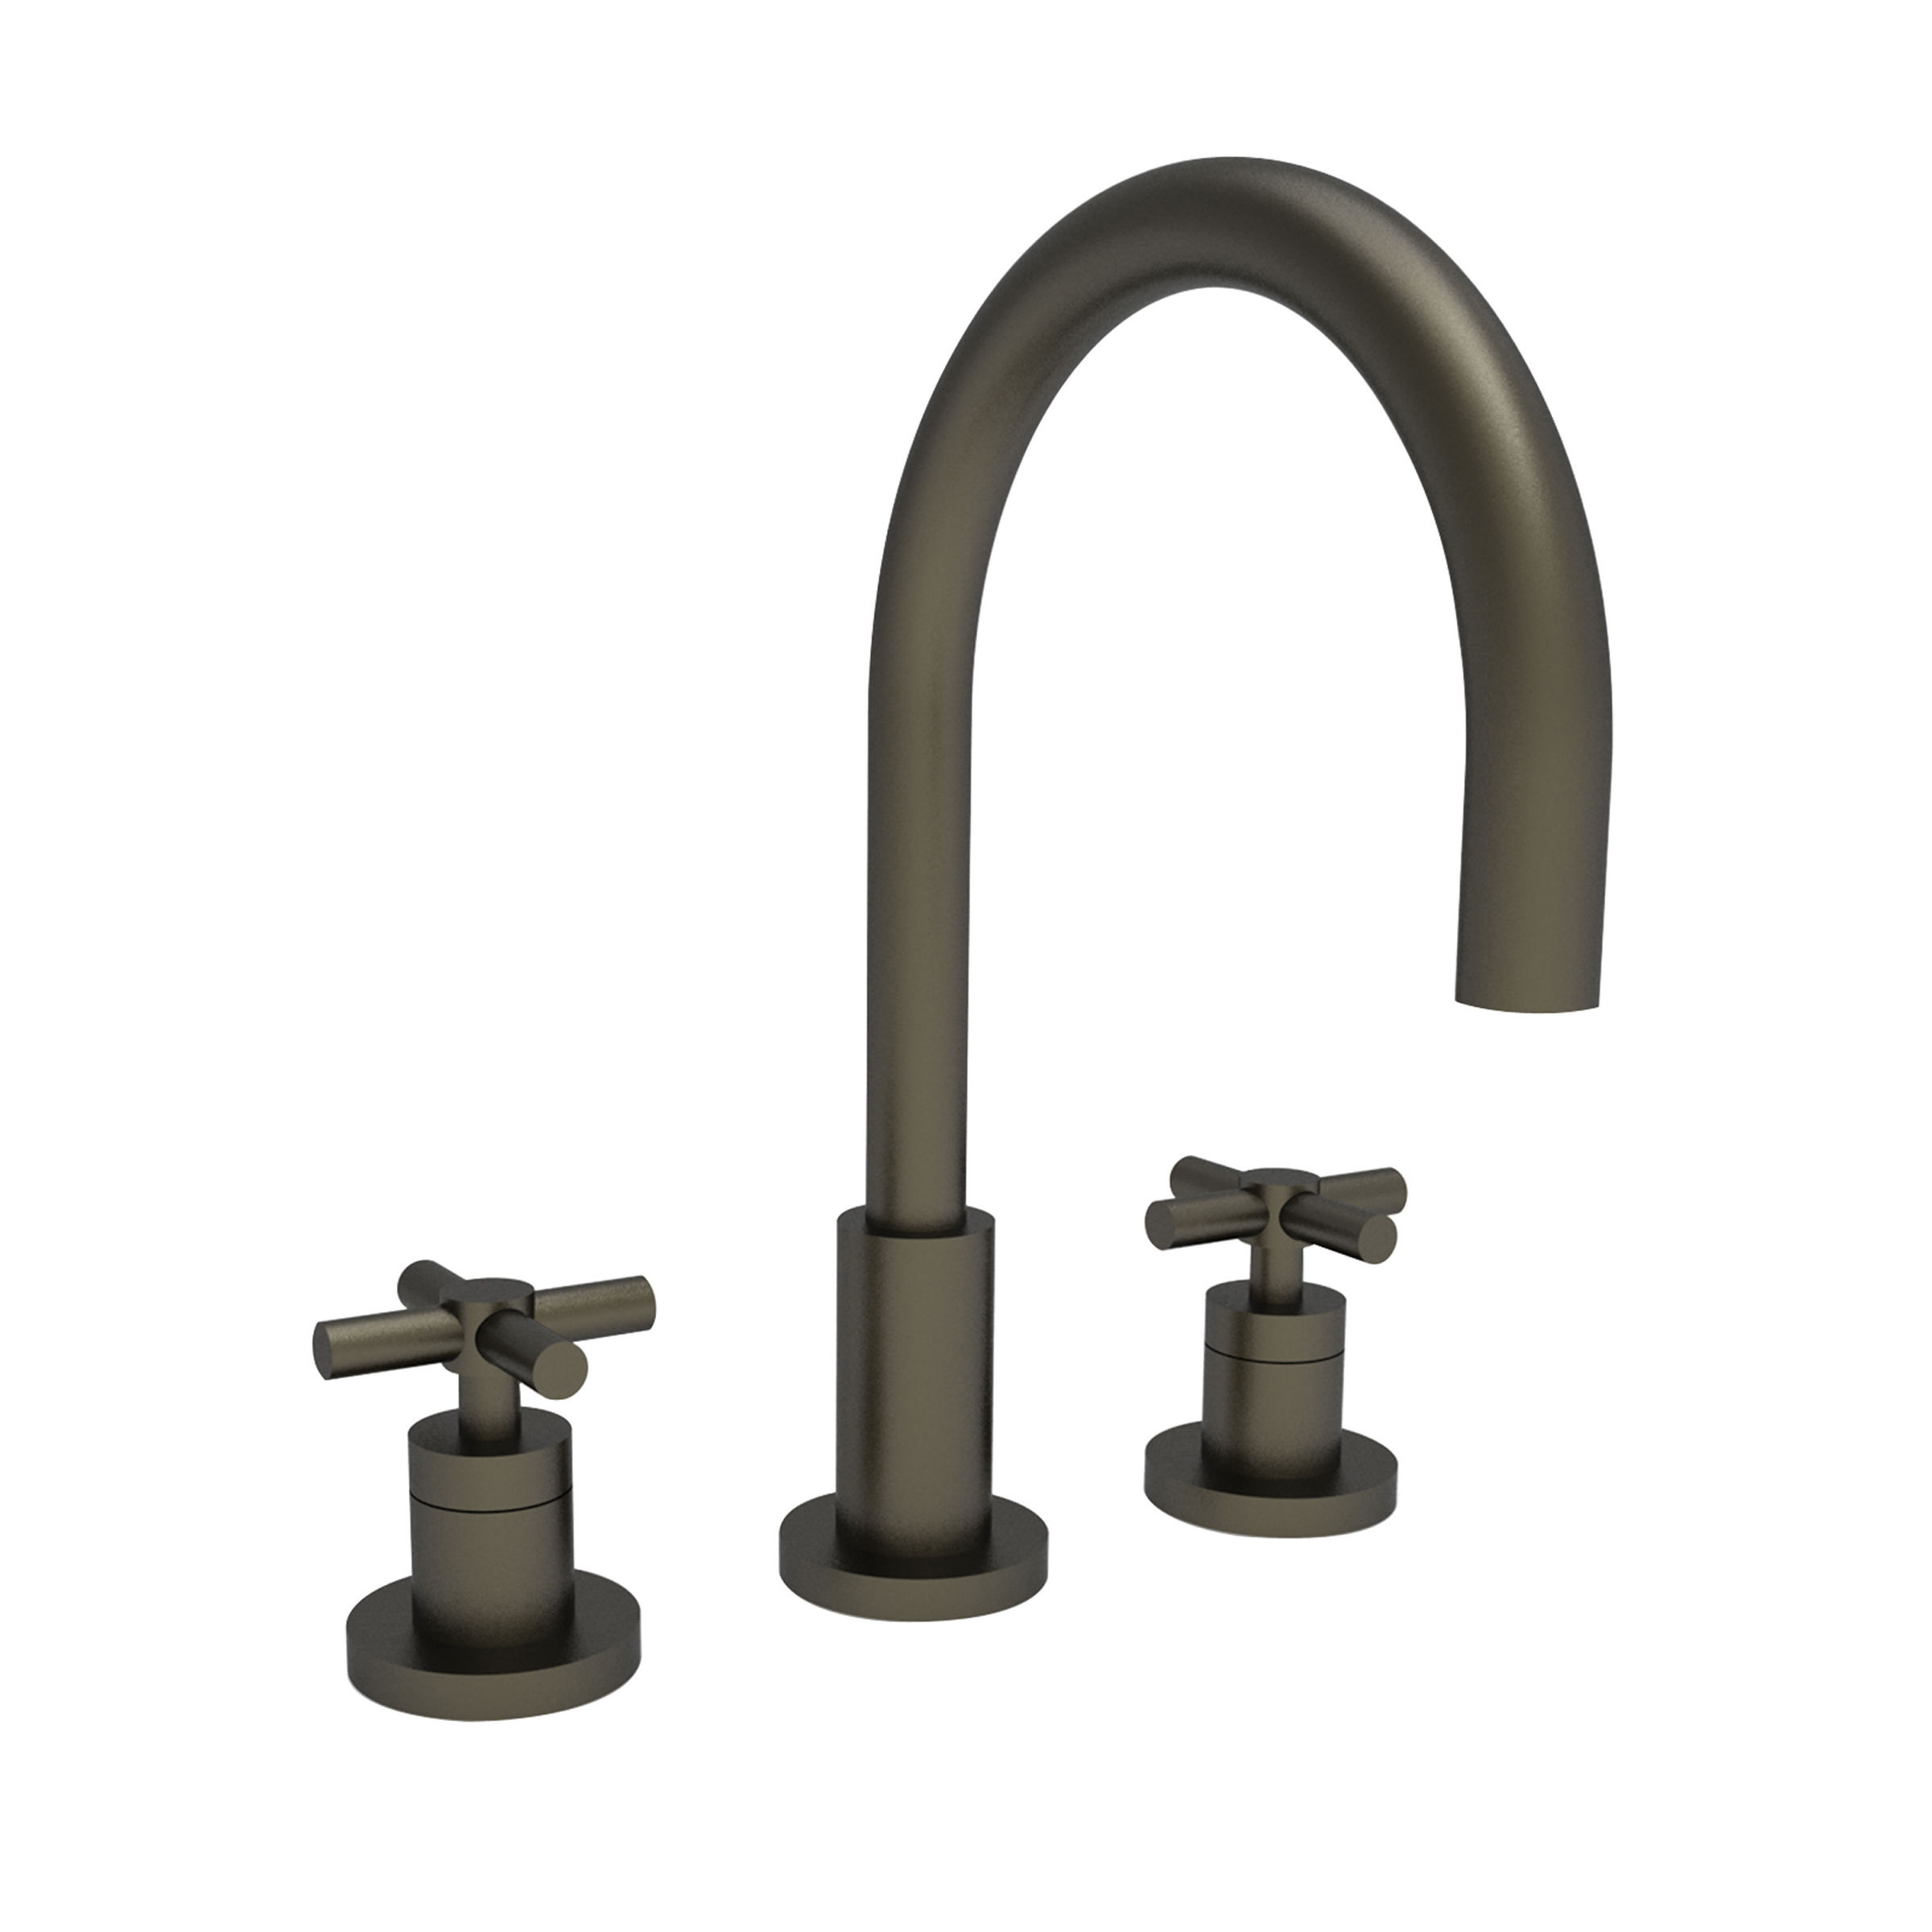 Newport brass 990 10b oil rubbed bronze east linear double handle widespread lavatory faucet with metal cross handles faucet com